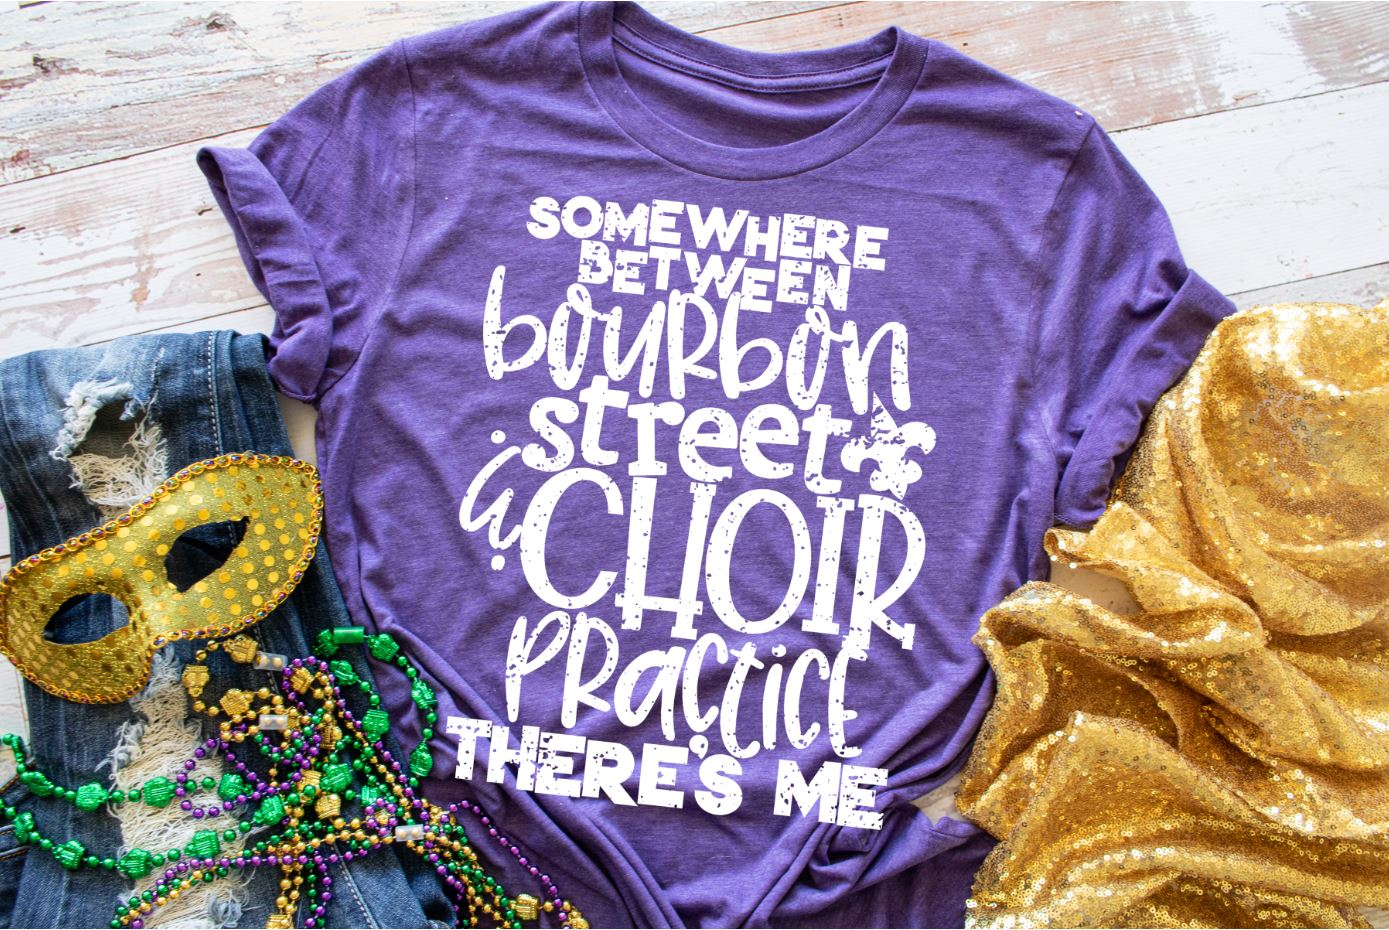 Somewhere Between Bourbon Street And Choir Practice PRINTABLE (design only)